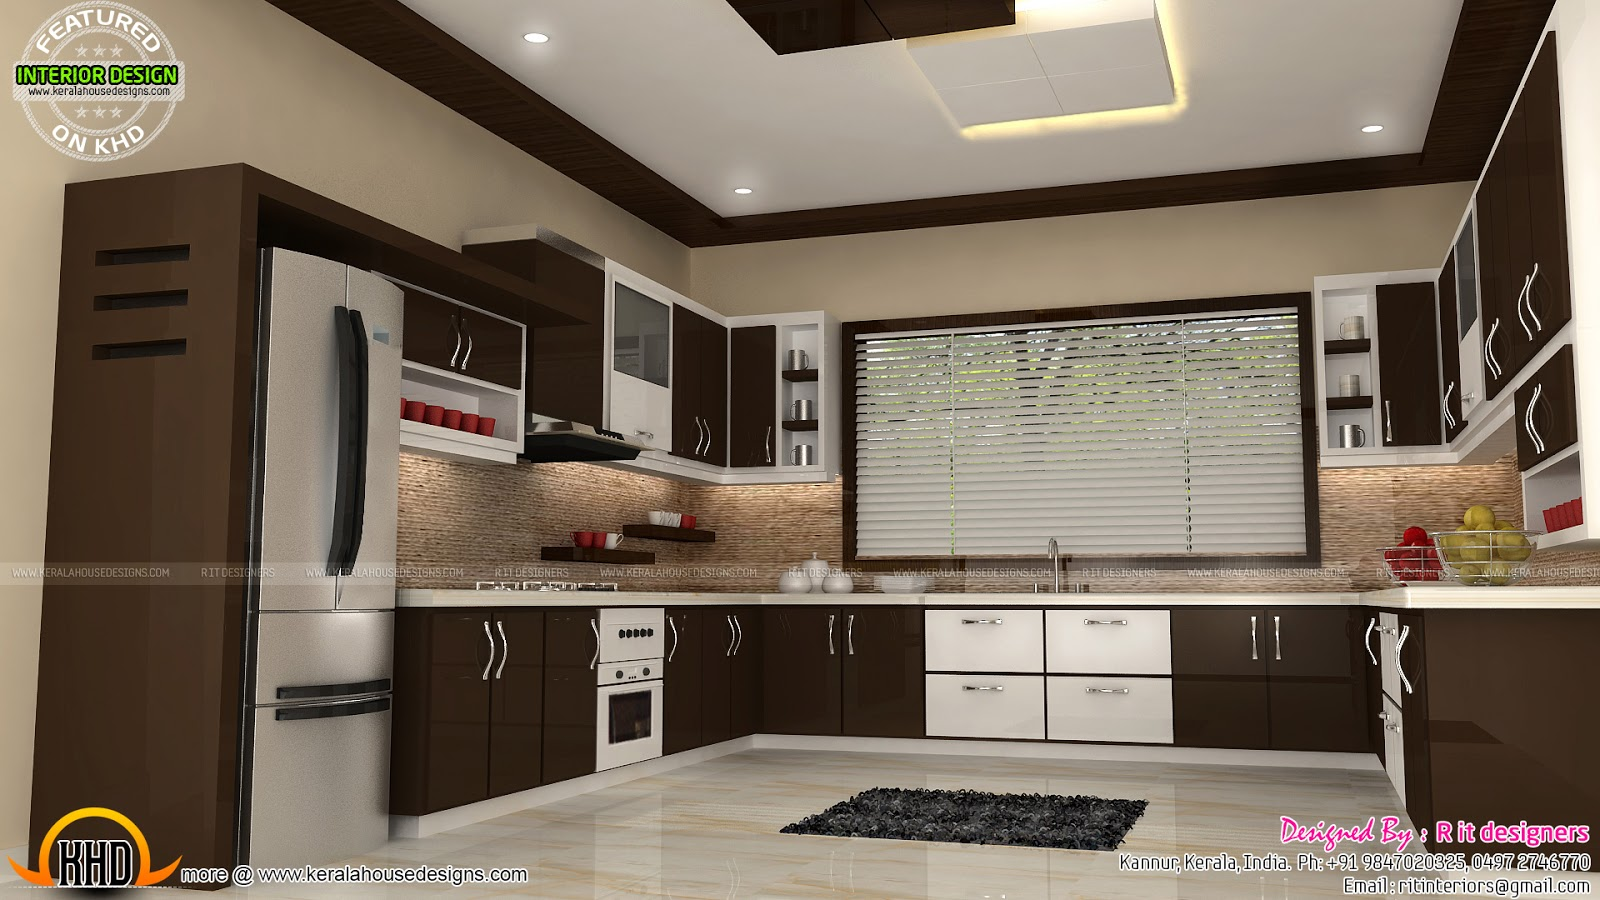 New modern luxury villa keralahousedesigns for 1 room kitchen interior design